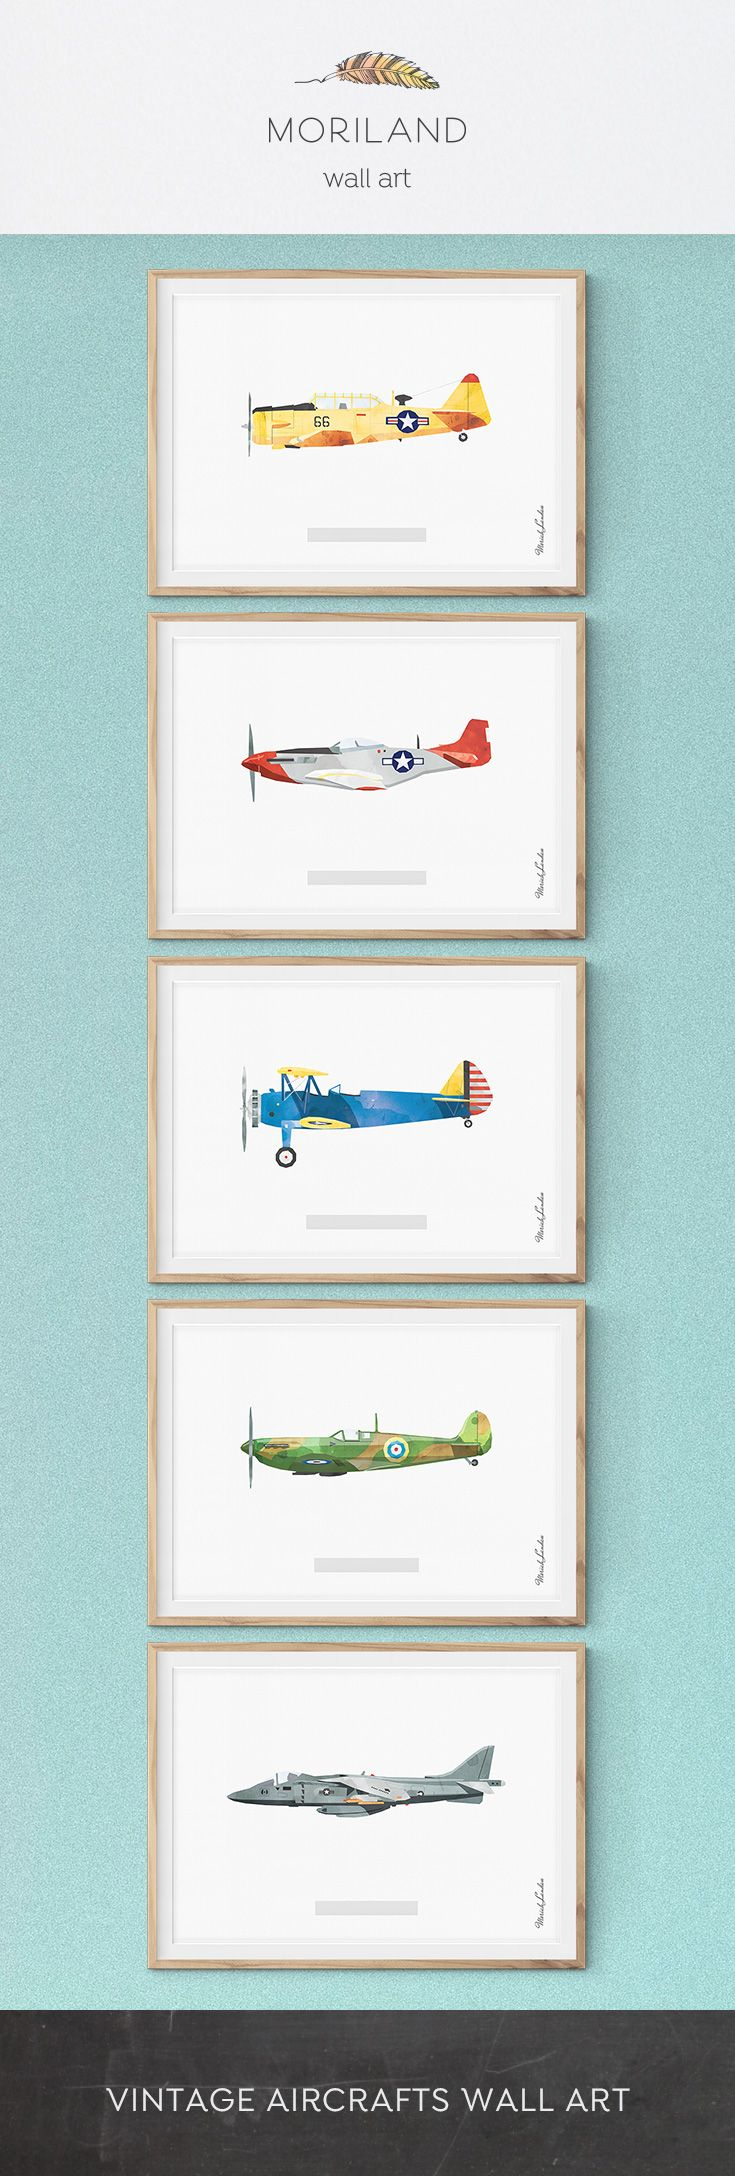 Plane Print Fighter Aircraft Art Airplane Print Airplane Wall Art Vintage Airplane Print Kids Room Plane Art Printable Decor With Images Vintage Airplane Prints Airplane Print Airplane Wall